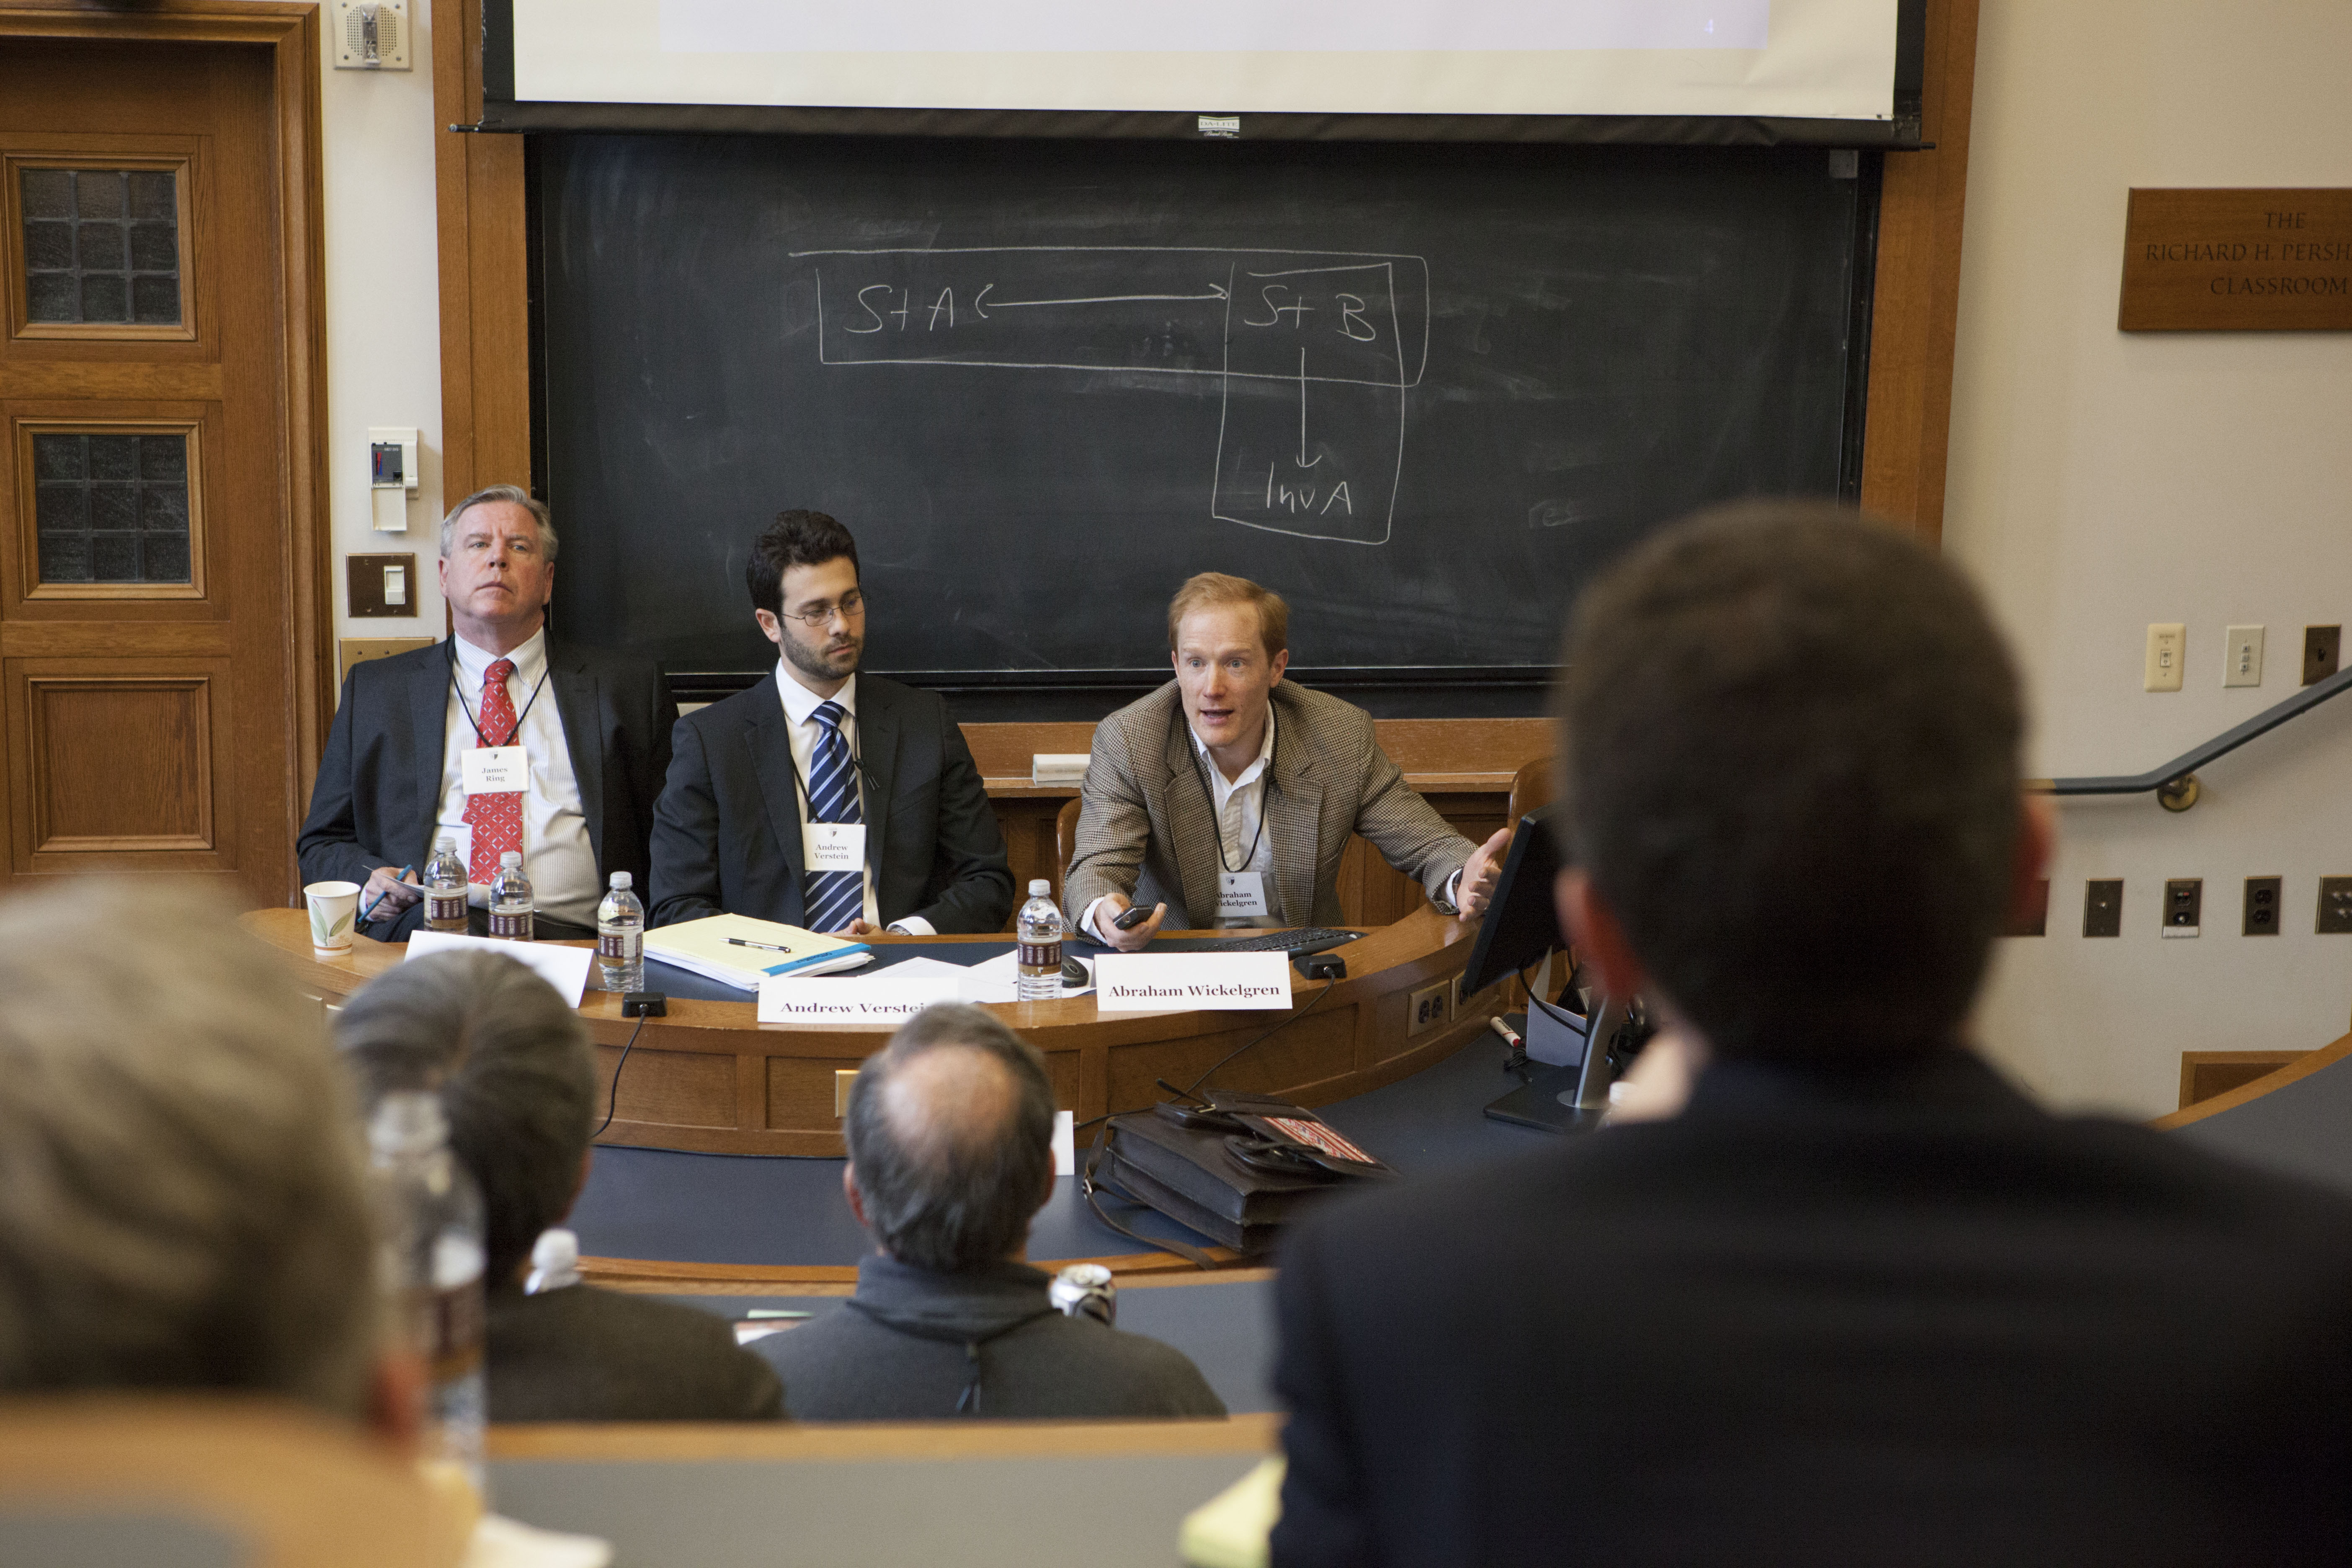 James F. Ring, Andrew Verstein '09, and Texas Law Prof. Abraham Wickelgren